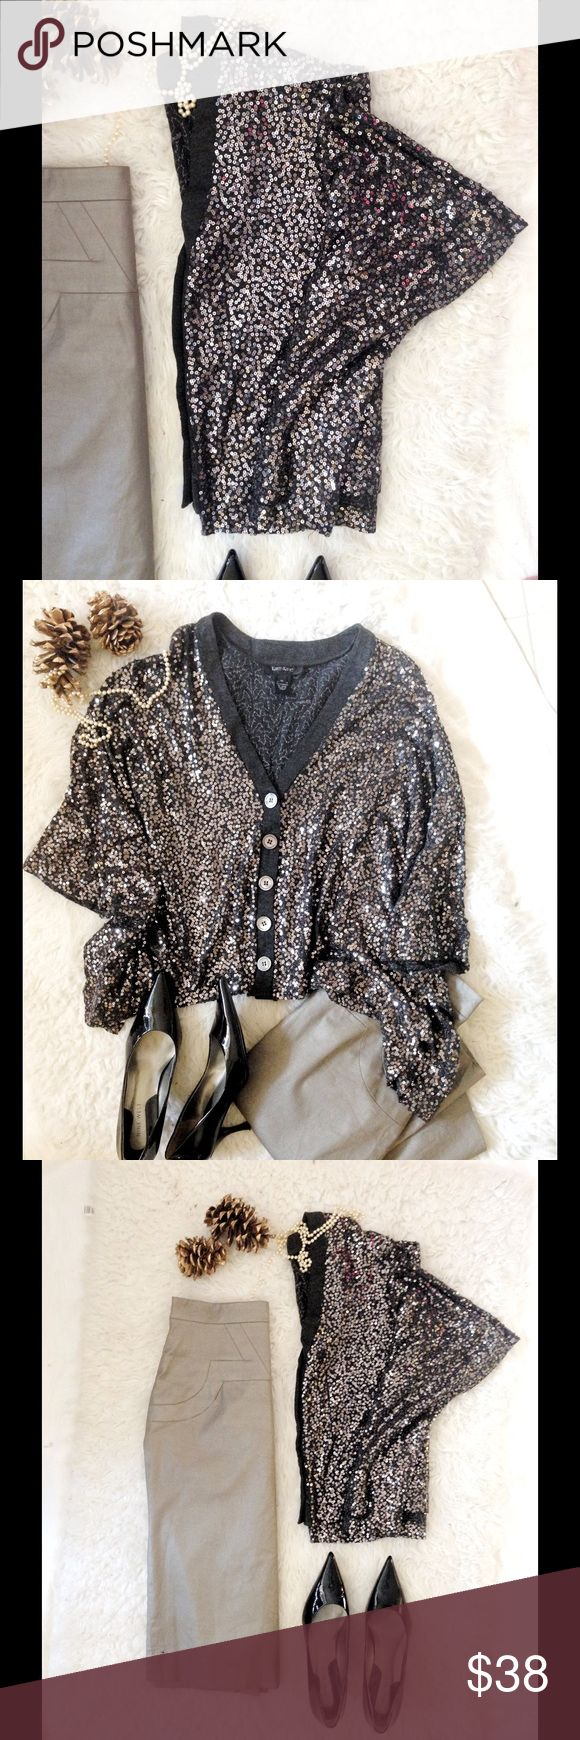 Karen Kane Holiday Sequin Cardigan Batwing Beautiful generous cut Medium with shark bite hem. Large batwing sleeves, almost like a cape. Medium weight drapes beautifully. charcoal grey with silver sequins and genuine abalone shell buttons. 💕Excellent condition. Karen Kane Tops